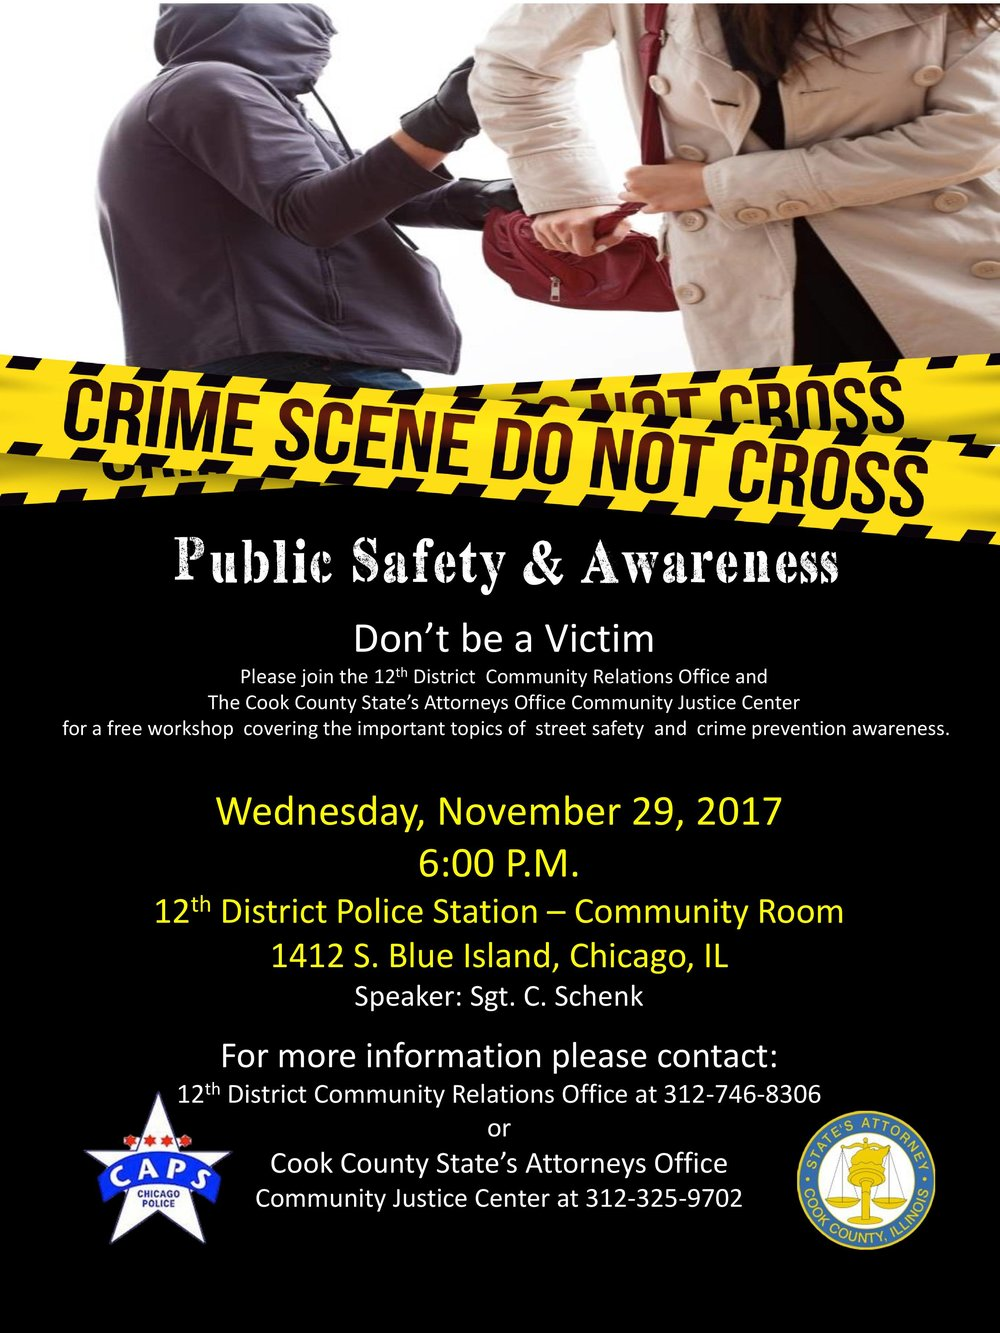 Public Safety & Awareness Flyer.jpg